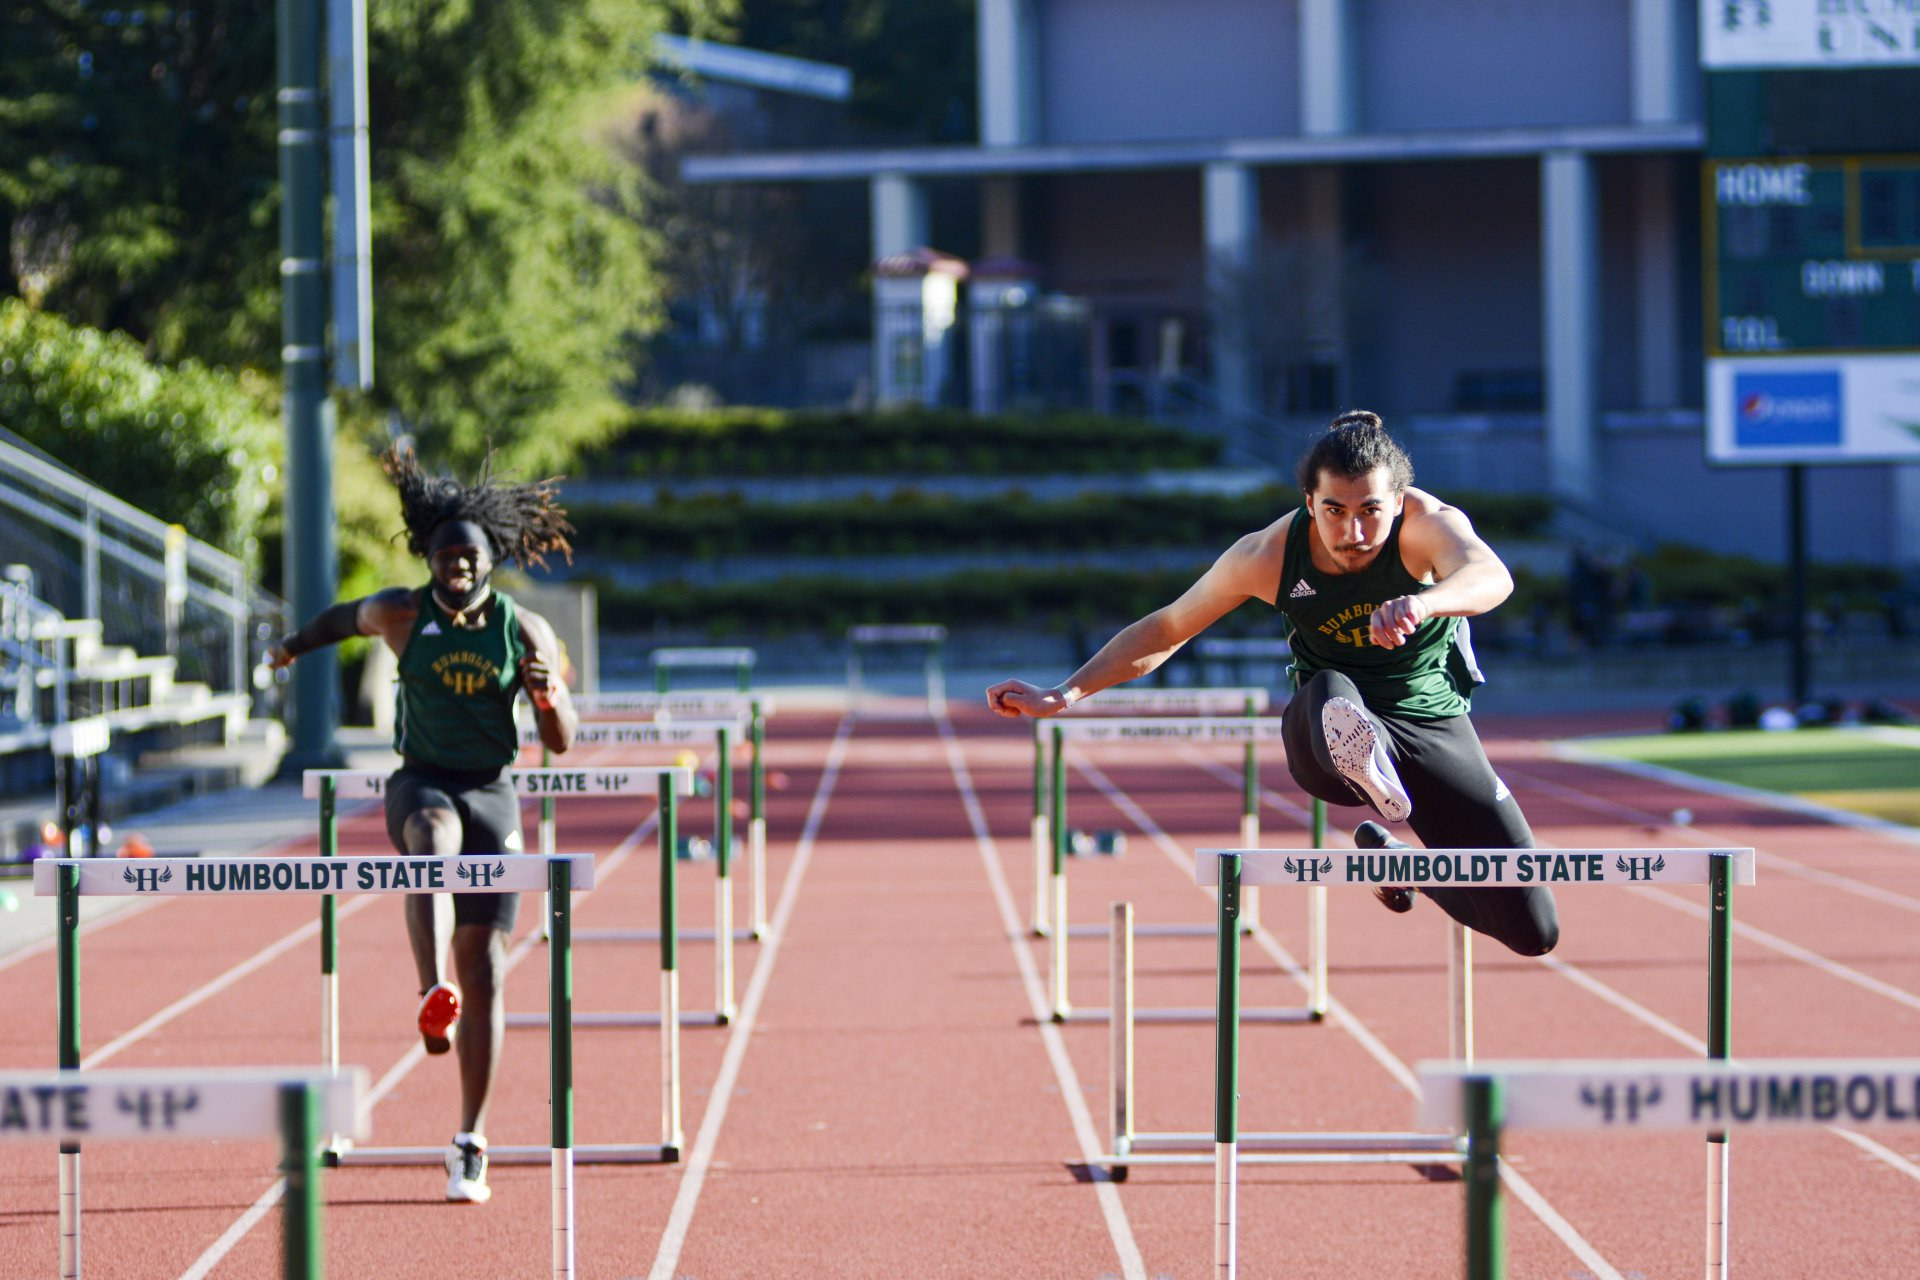 Humboldt State junior Henry Hagen (right) leads his teammate Travis Allen in the 60 meter hurdles rave at an inter-squad meet at the Redwood Bowl on Friday, March 12 | Photo by Elliott Portillo